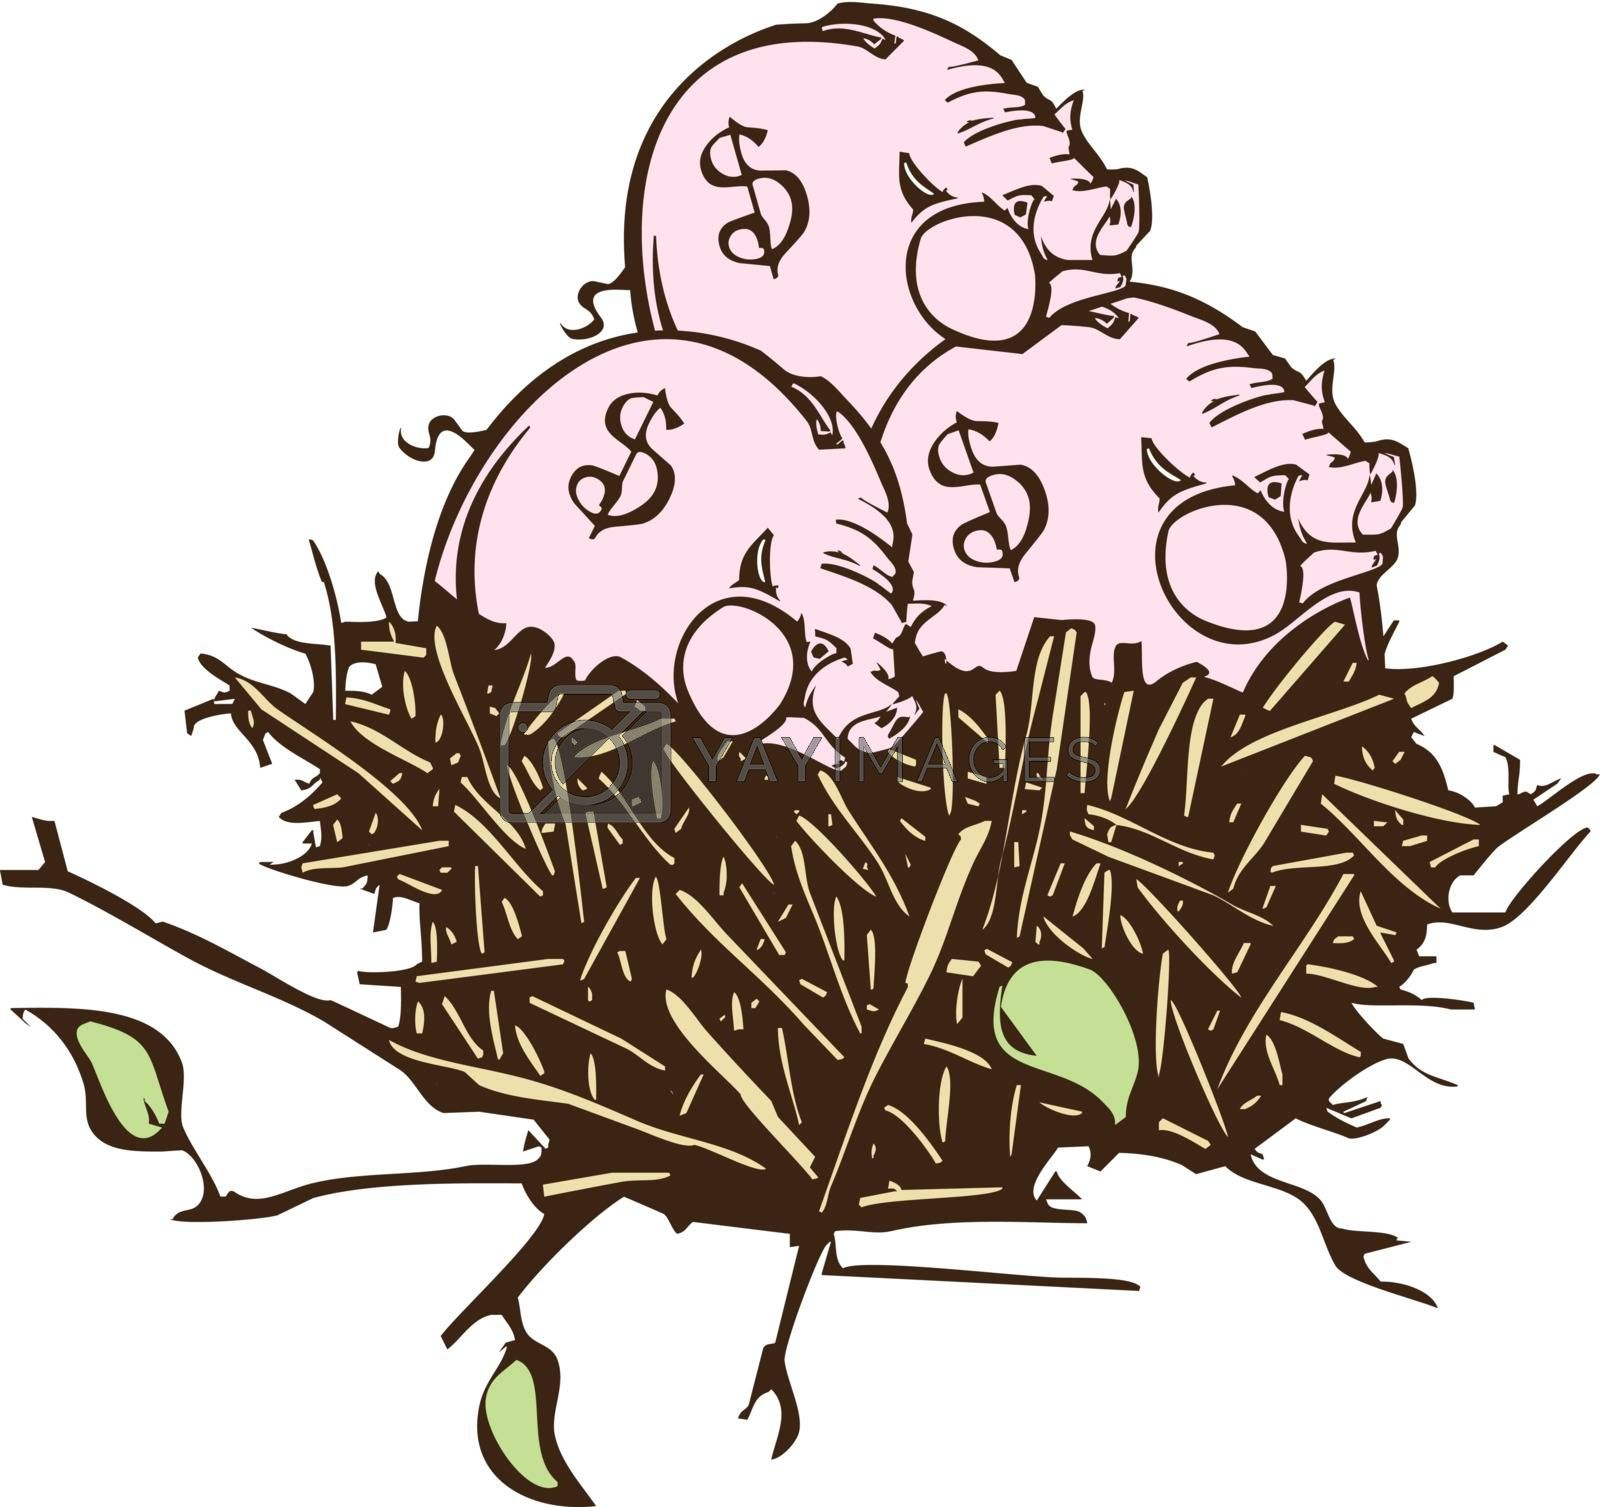 Woodcut style image of a nest with piggy banks instead of eggs.